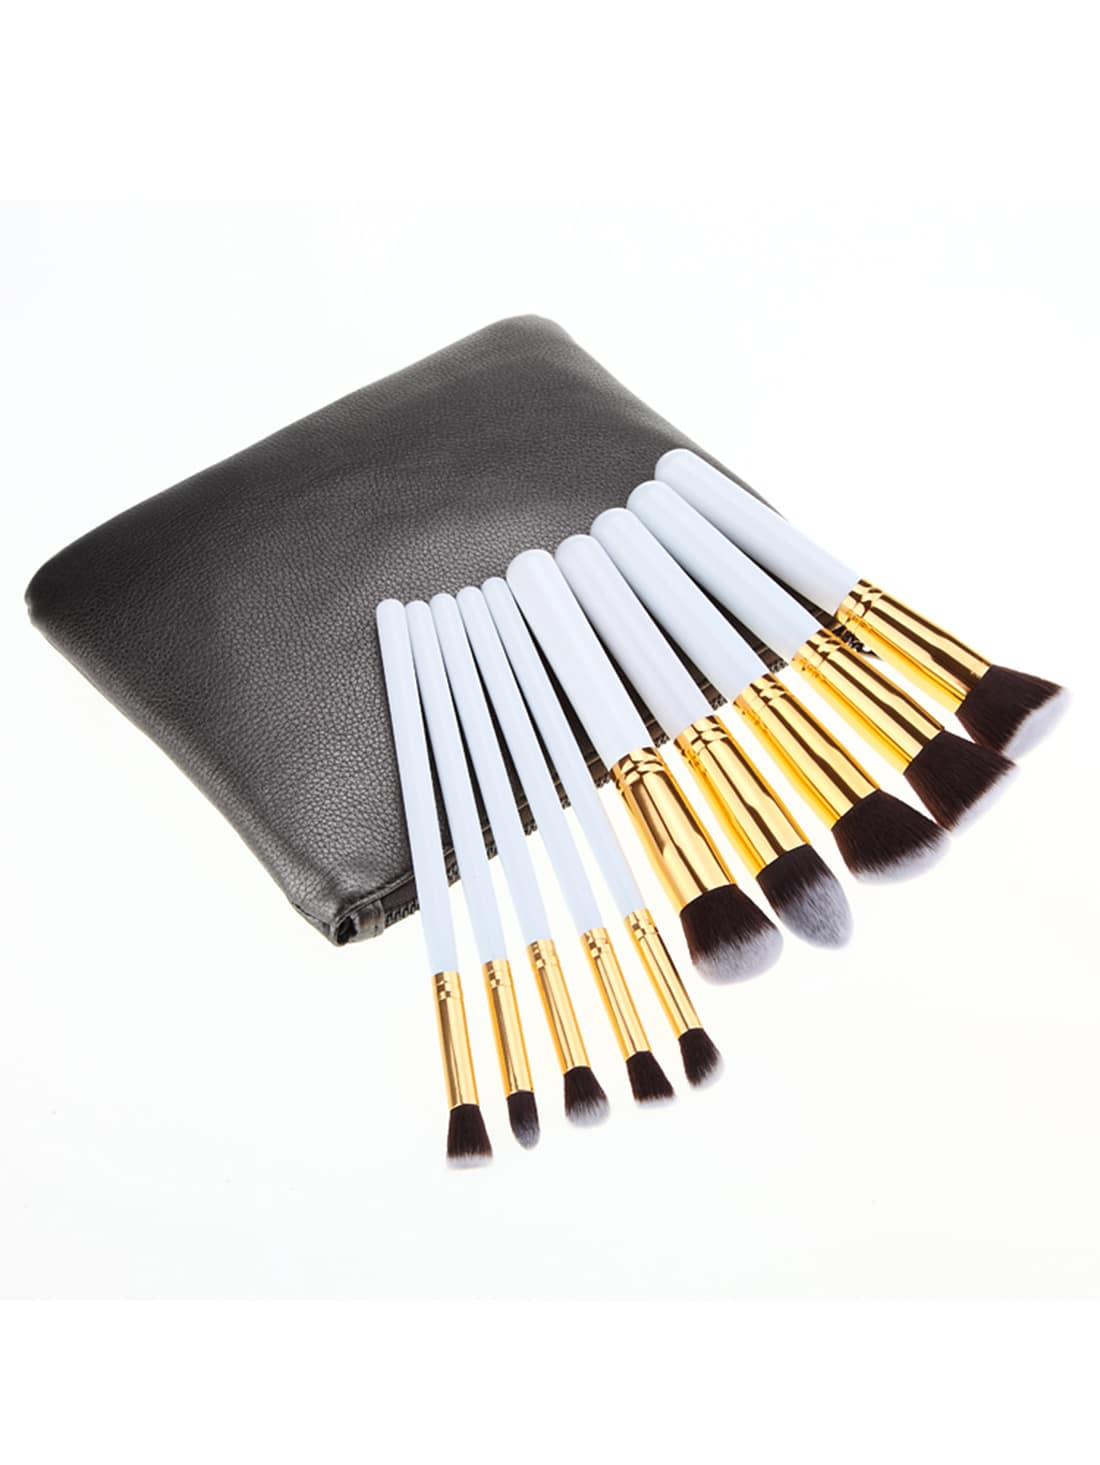 Image of 10PCS Make Up Bush Set With Bag - White